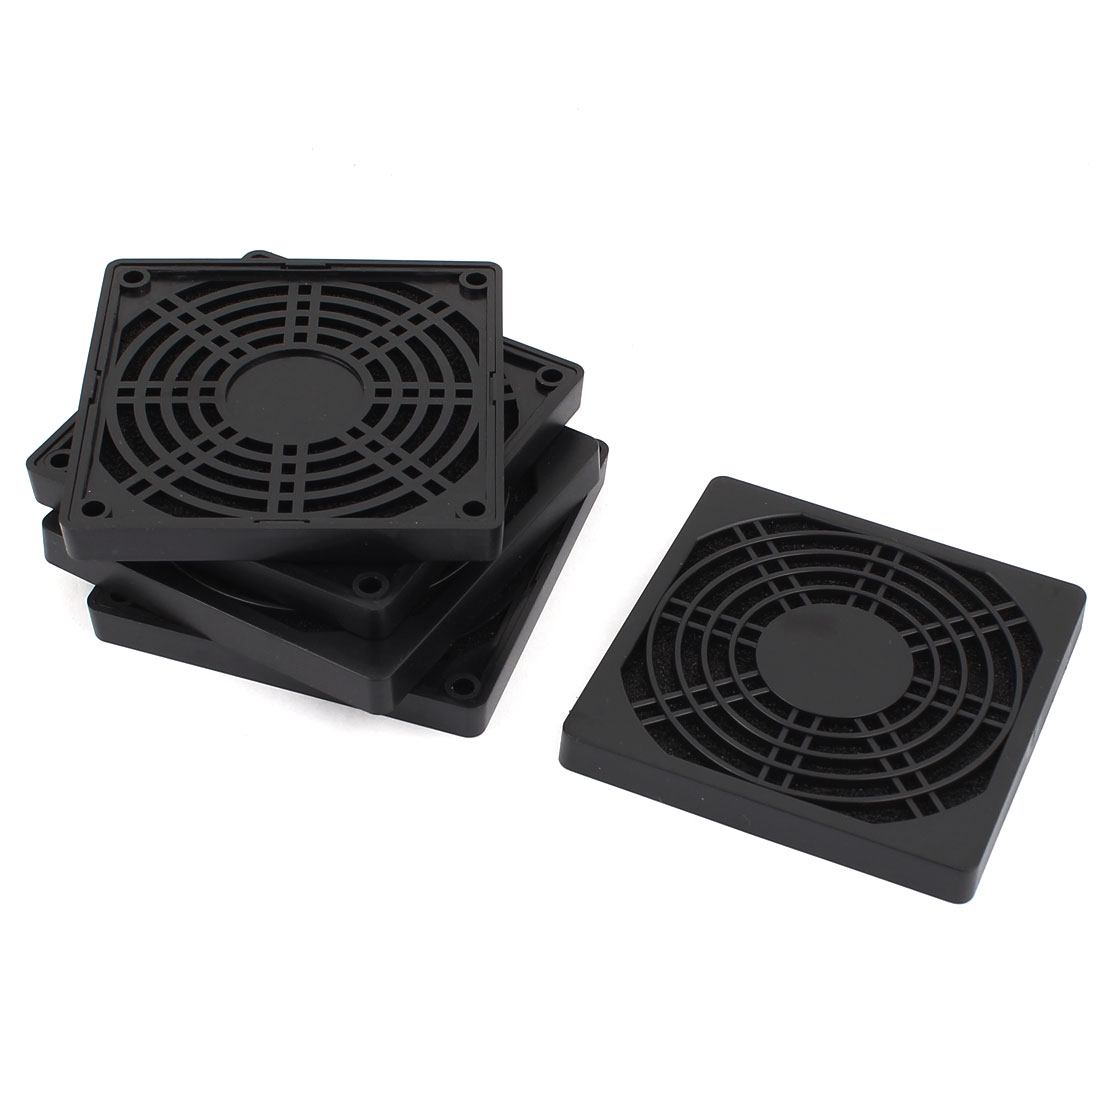 5Pcs Computer PC Dustproof Cooler Cooling Fan Case Cover Dust Filter Protector 90 x 90mm